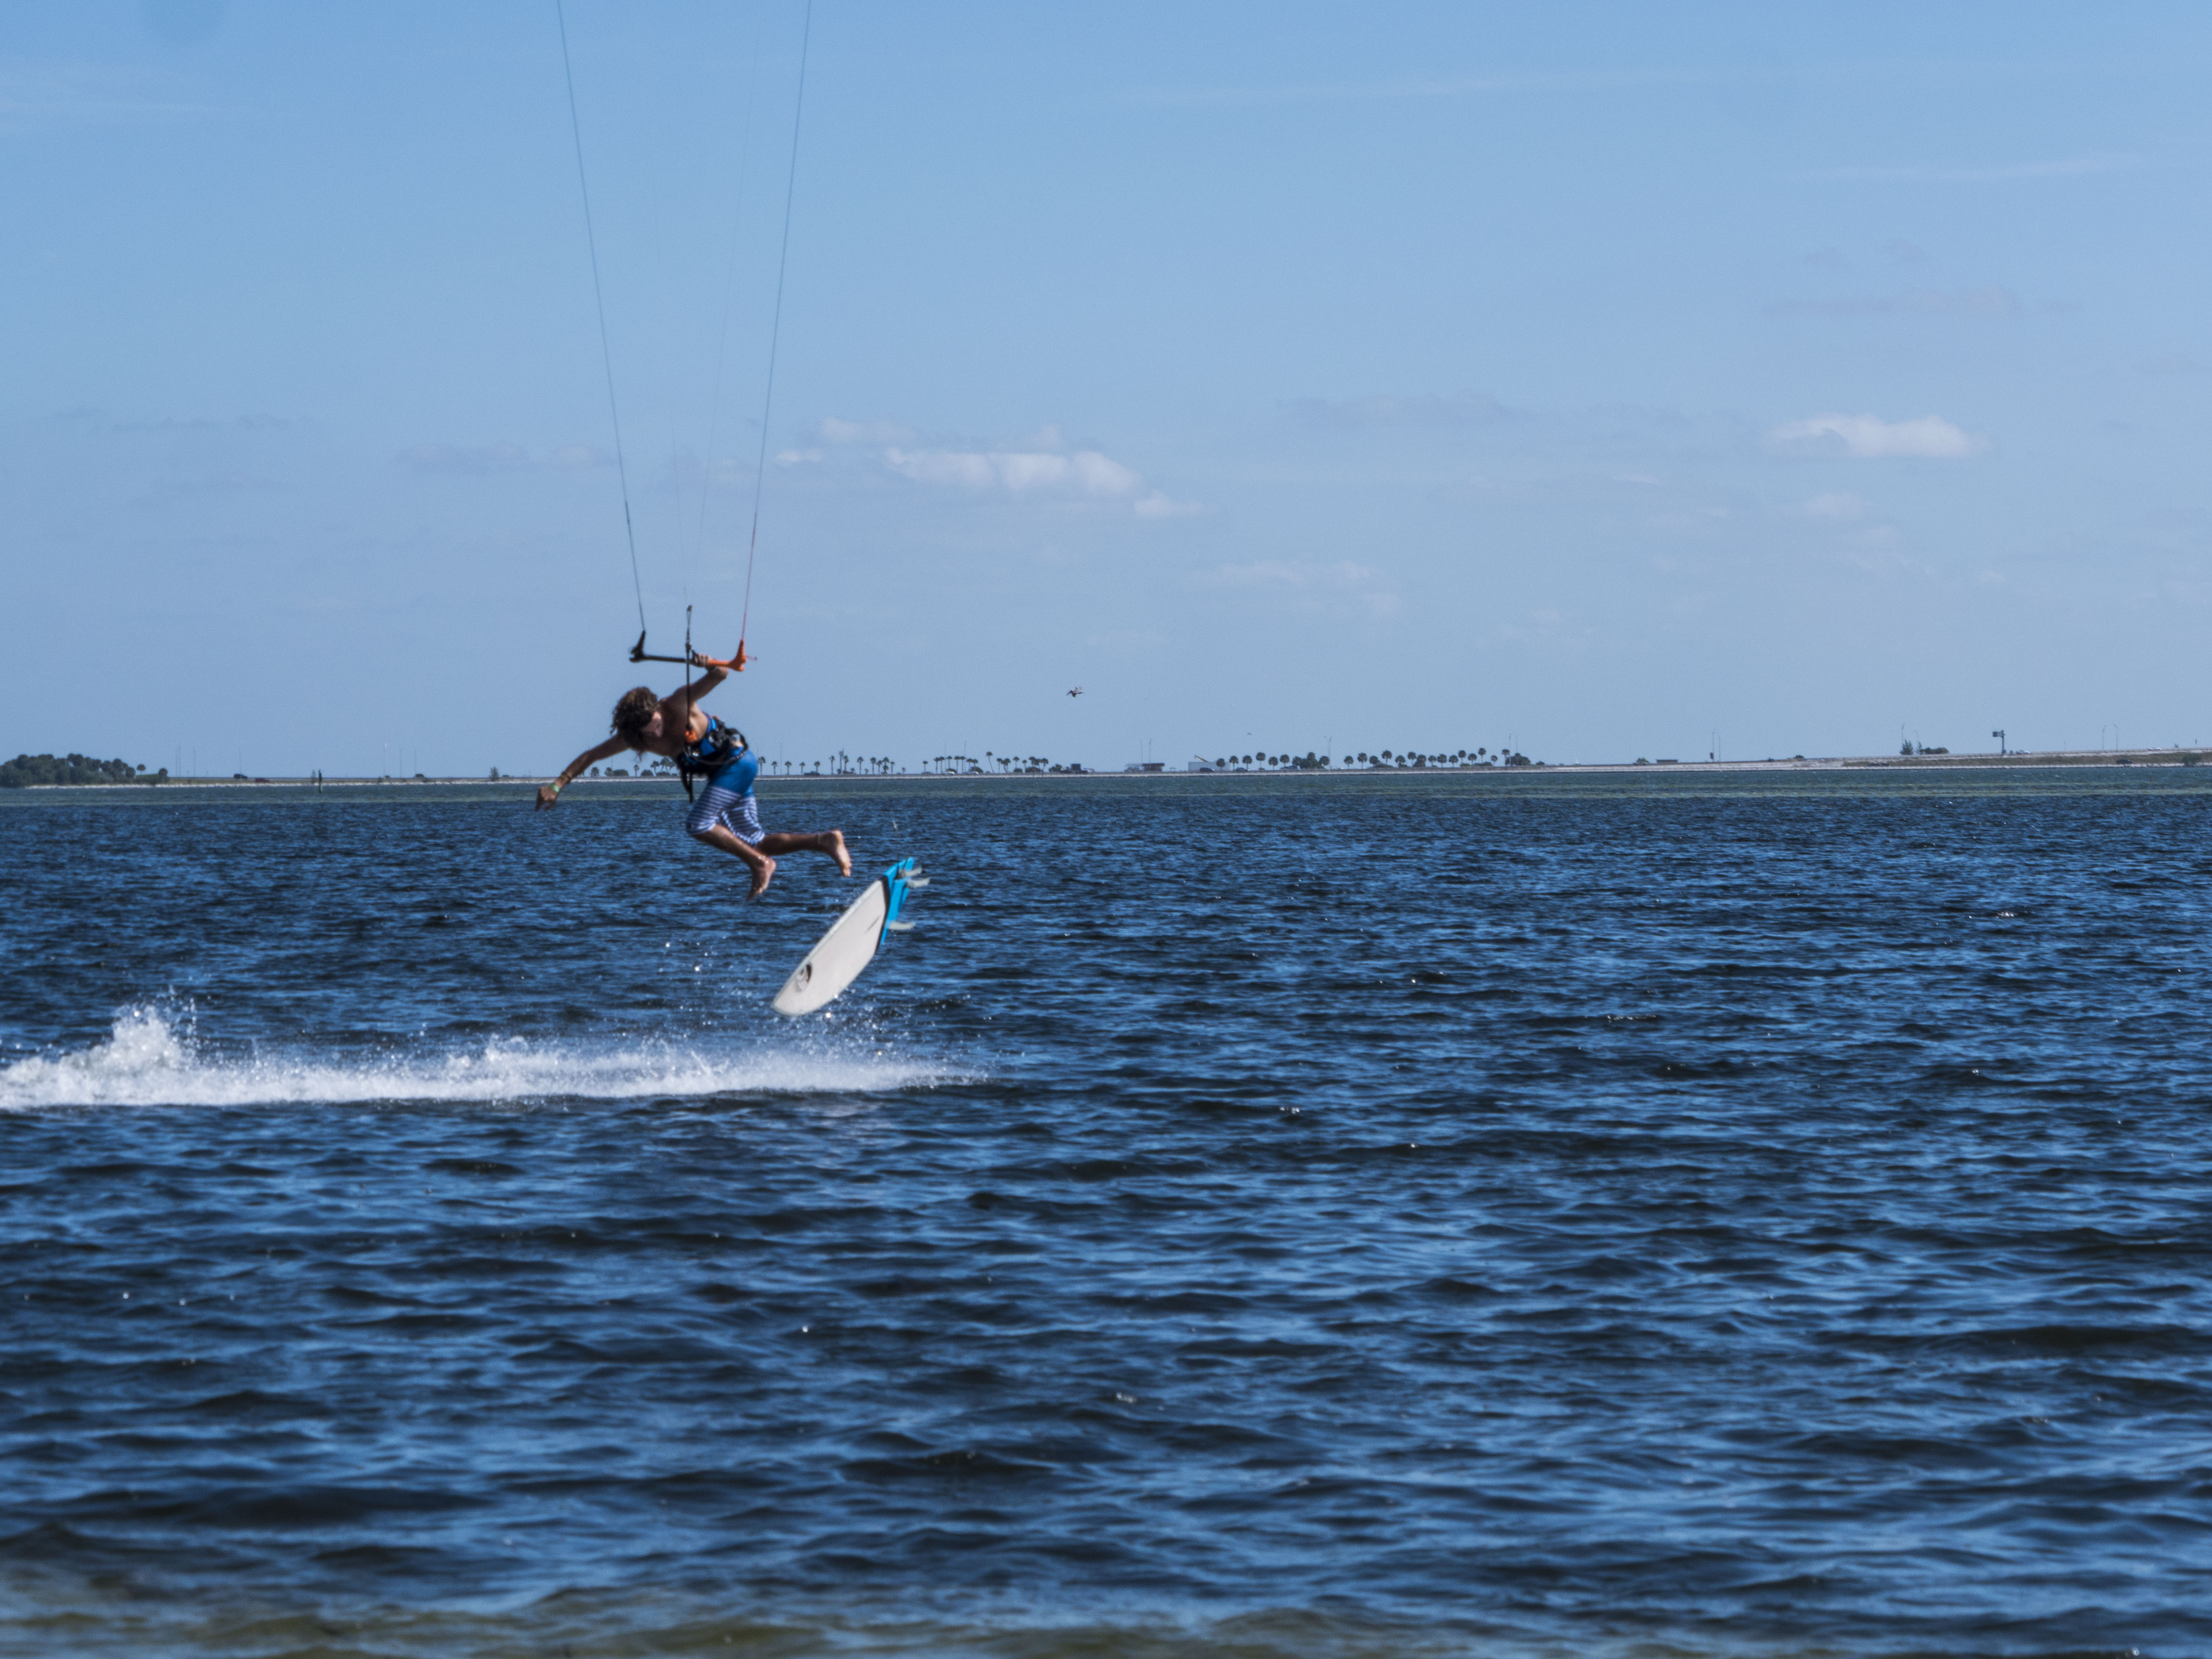 Cabrinha Demo at Fort Desoto